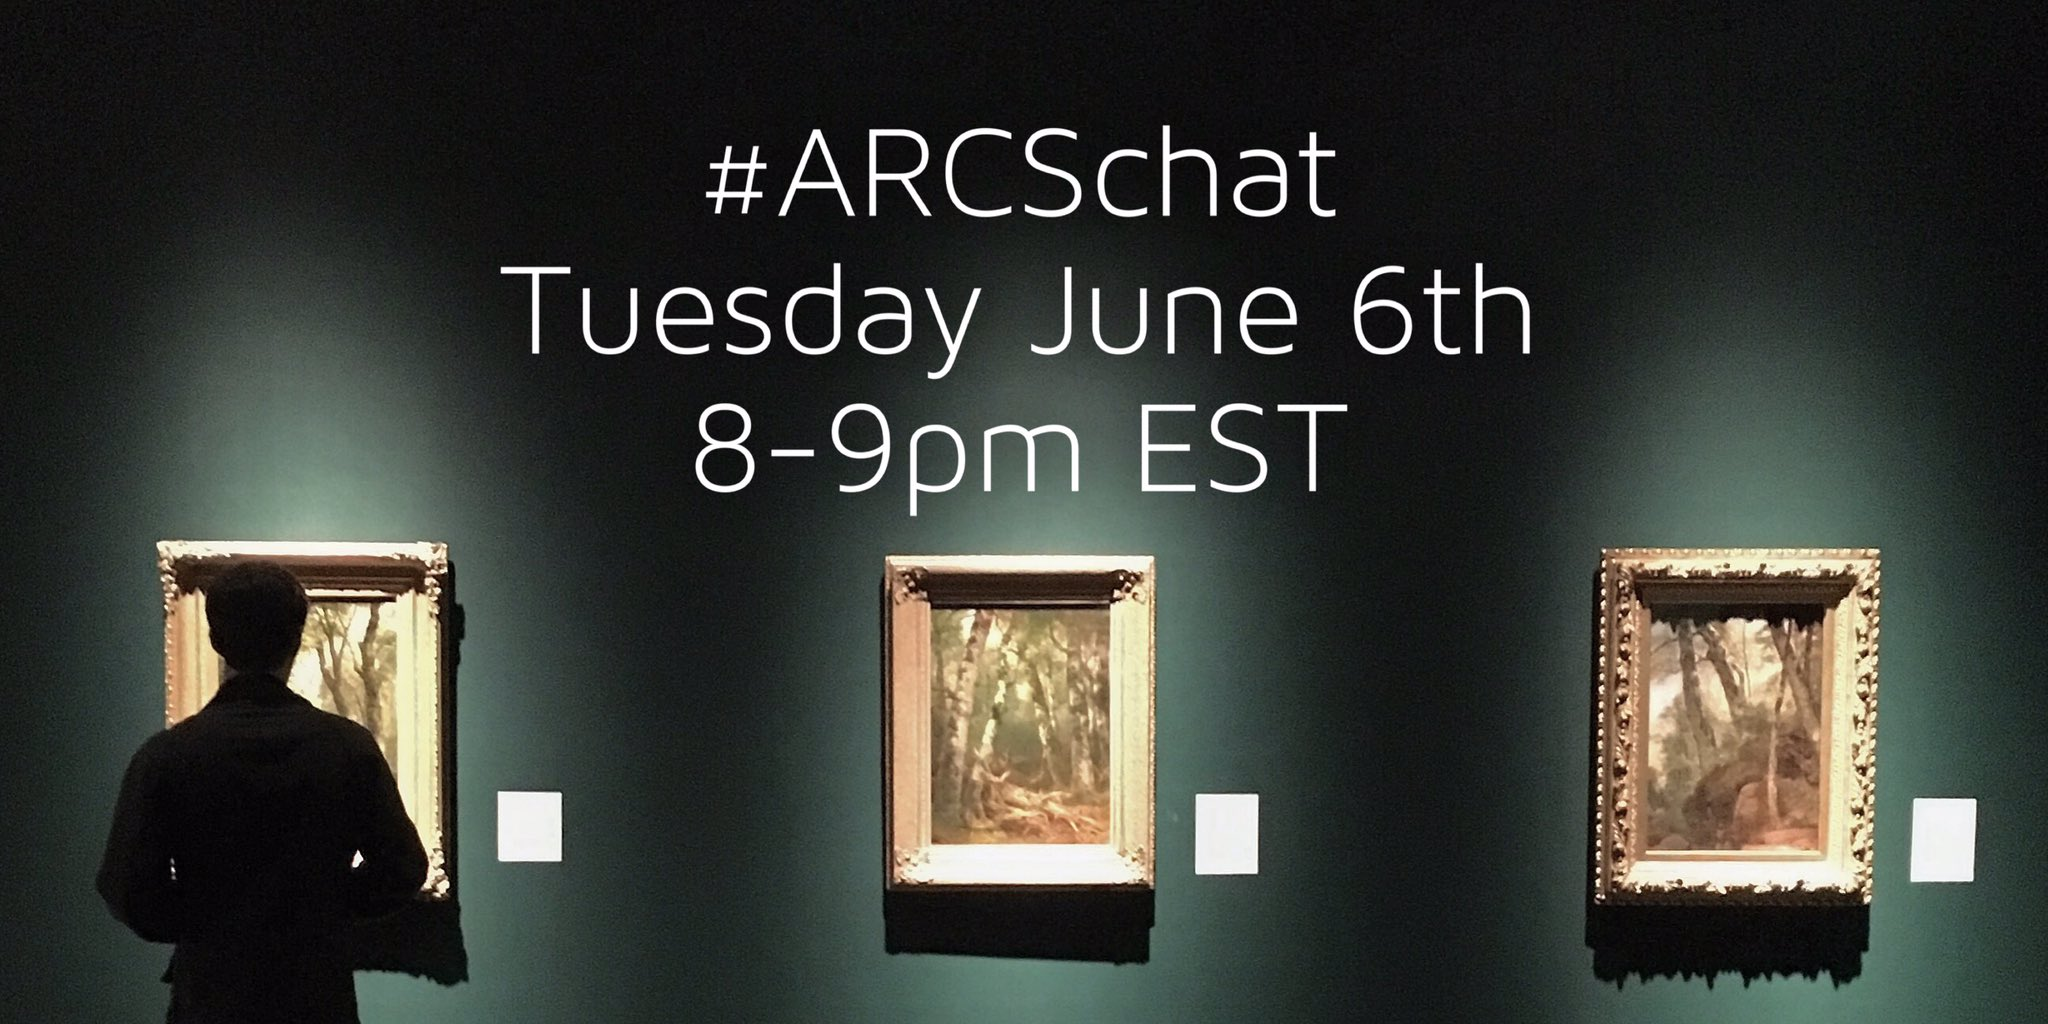 Thumbnail for #ARCSchat 06 June 2017 - Connecting Collections Work to Broader Cultural Themes